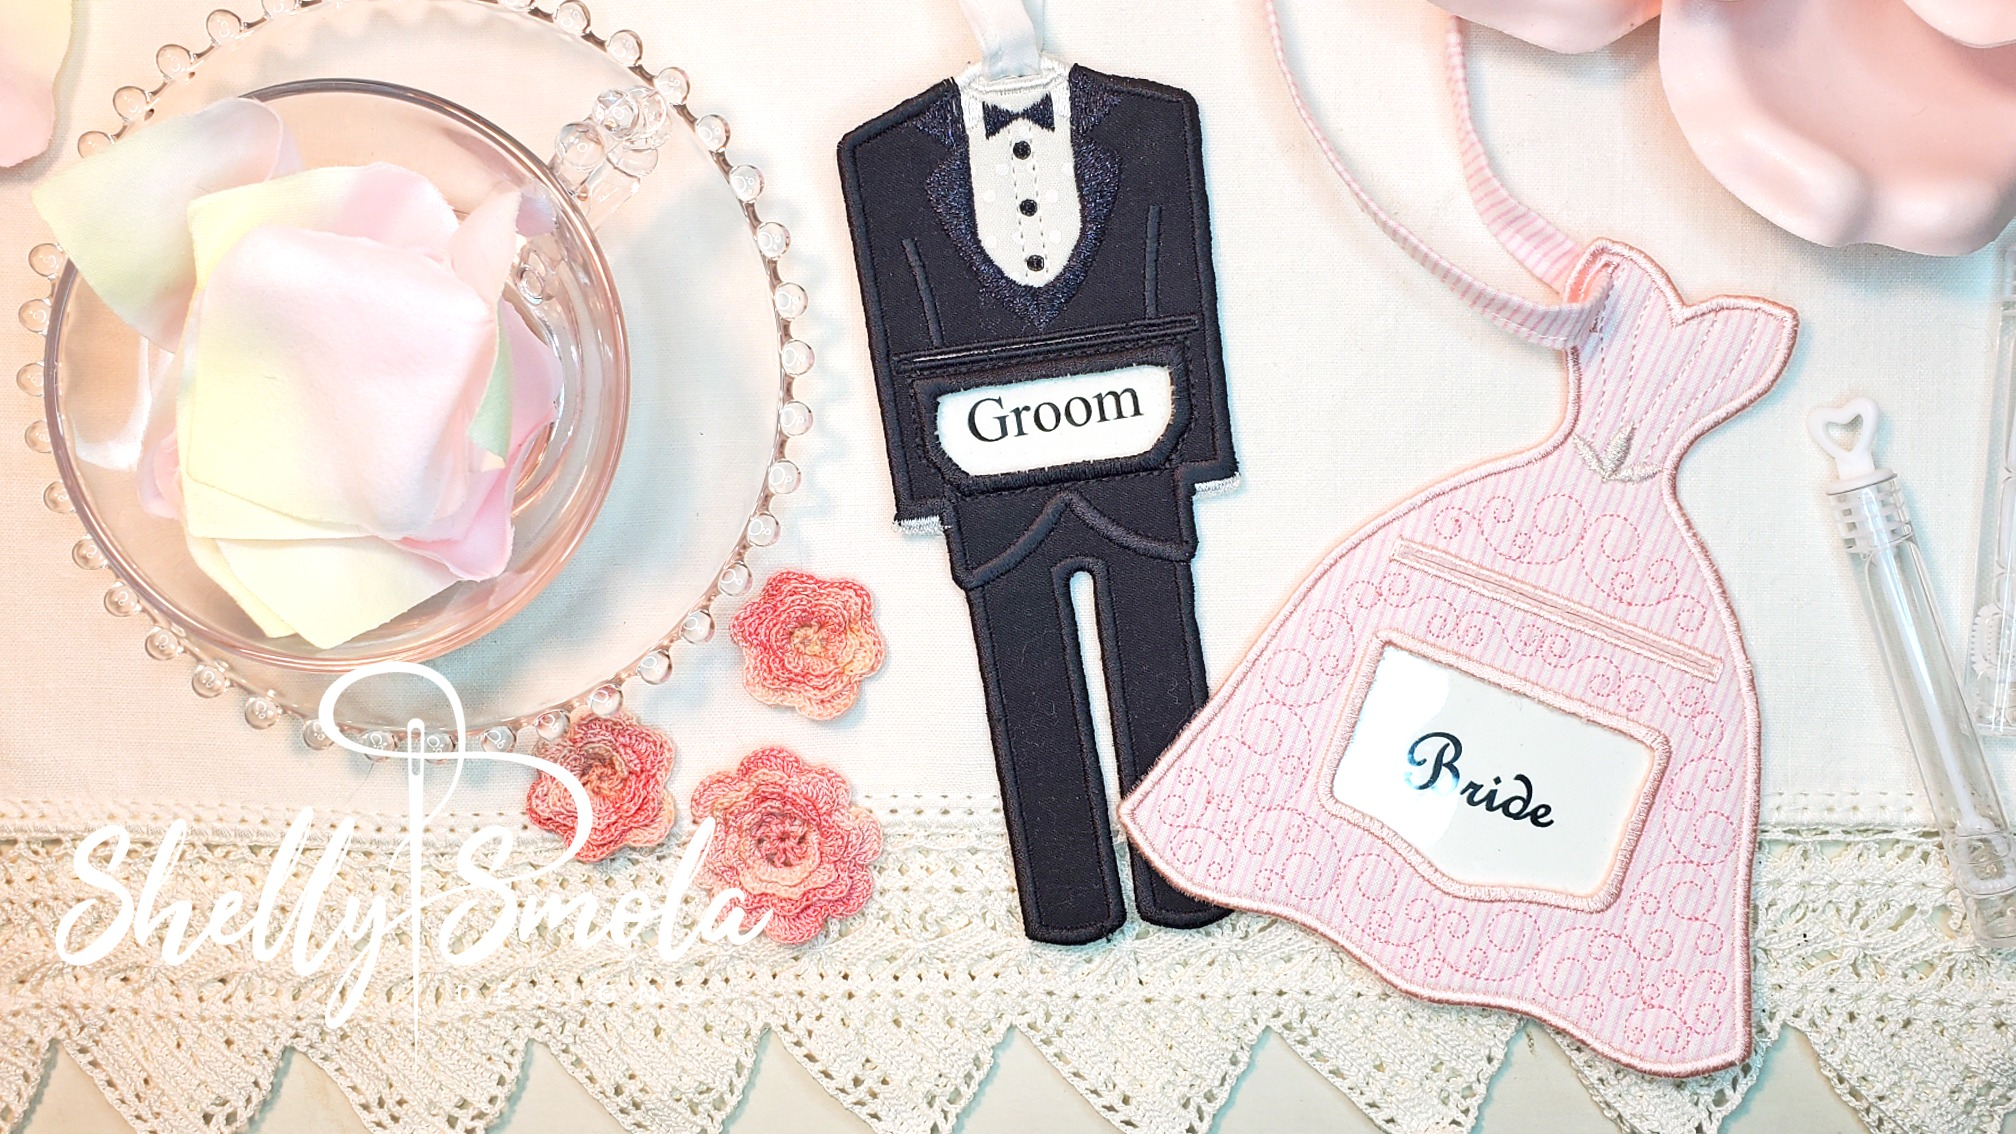 Bride and Groom Tags by Shelly Smola